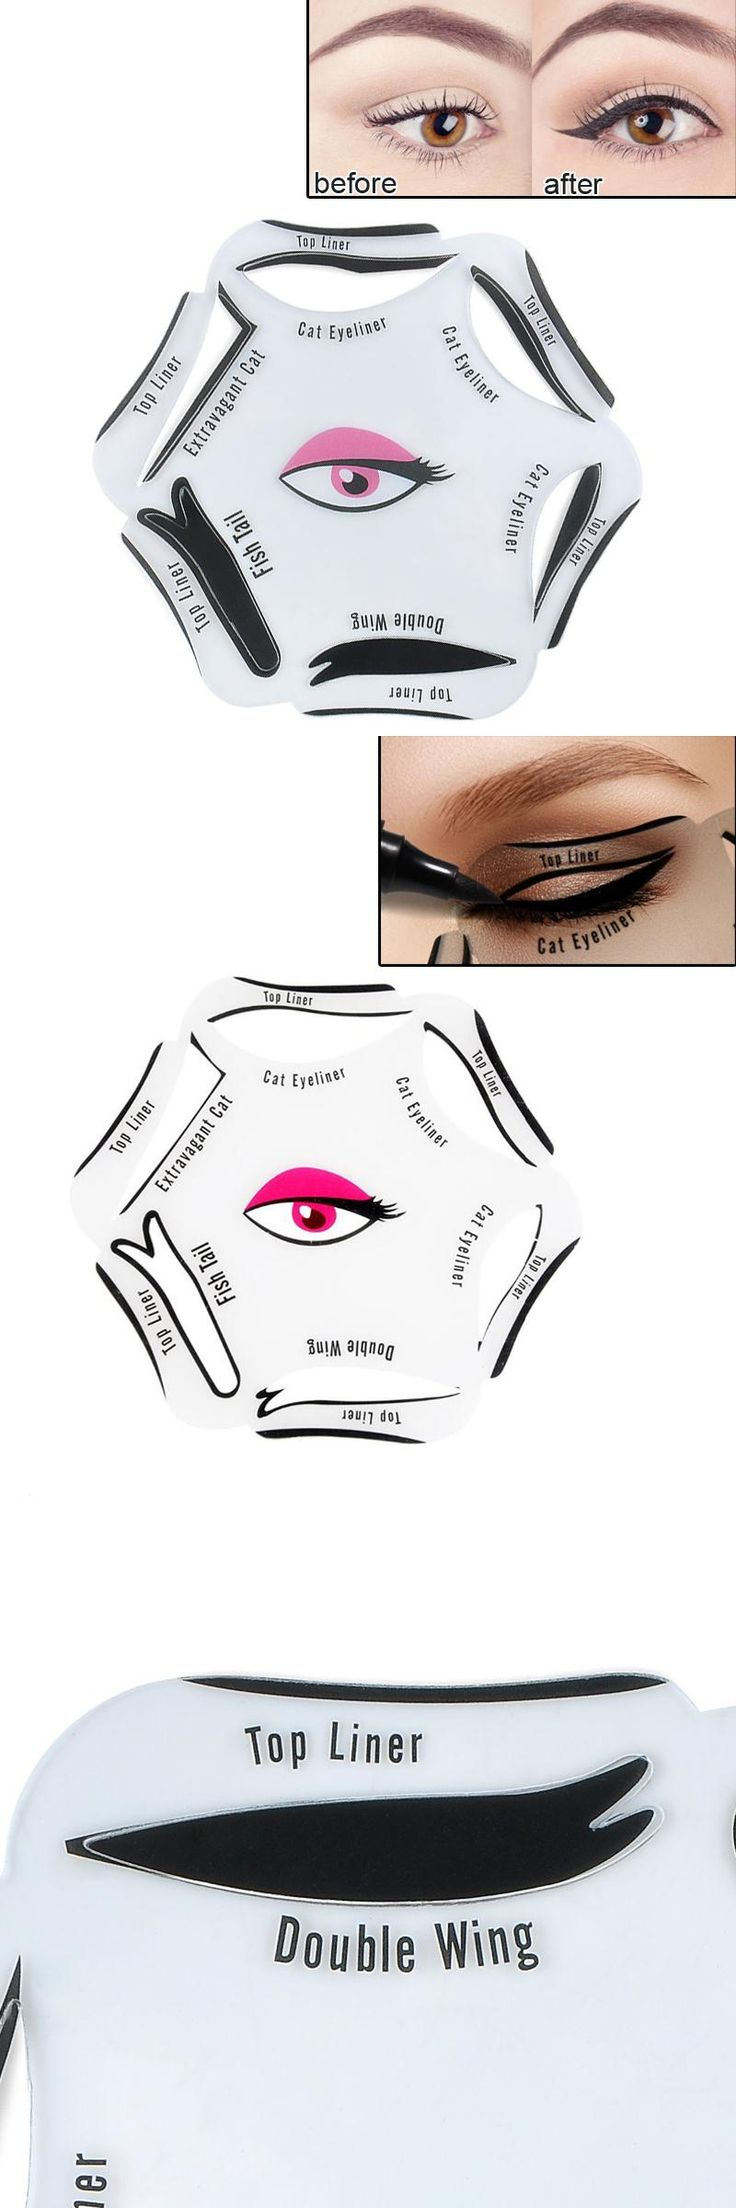 [Visit to Buy] Easy Eyeliner Tutorial 6 in 1 Makeup Eyeliner Stencil Classic Smoky Eyes Template Quick Beauty Tool  #Advertisement